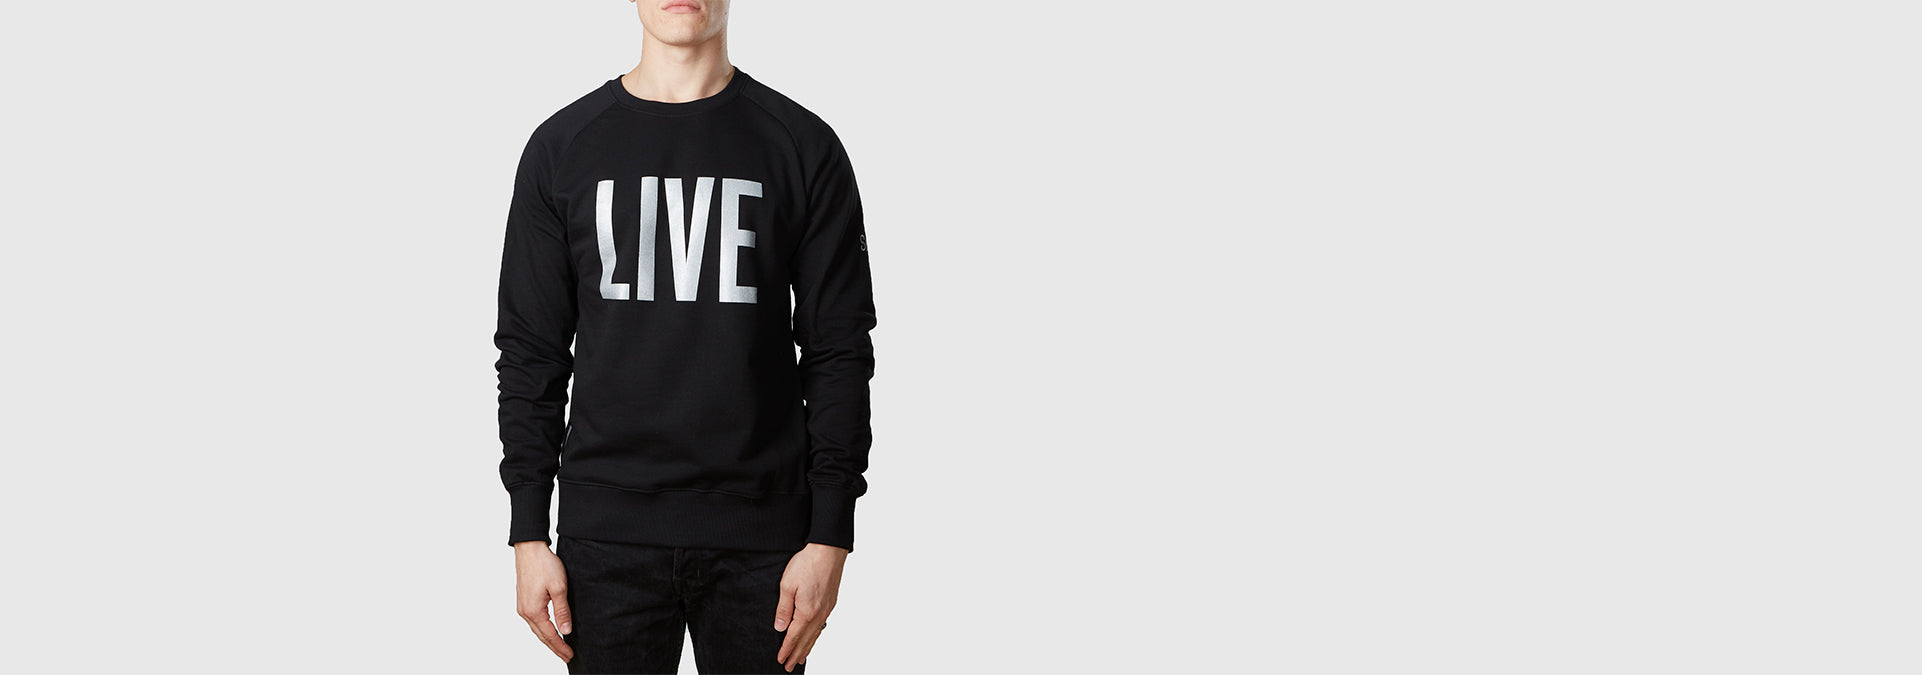 Live Organic Cotton Sweat Black